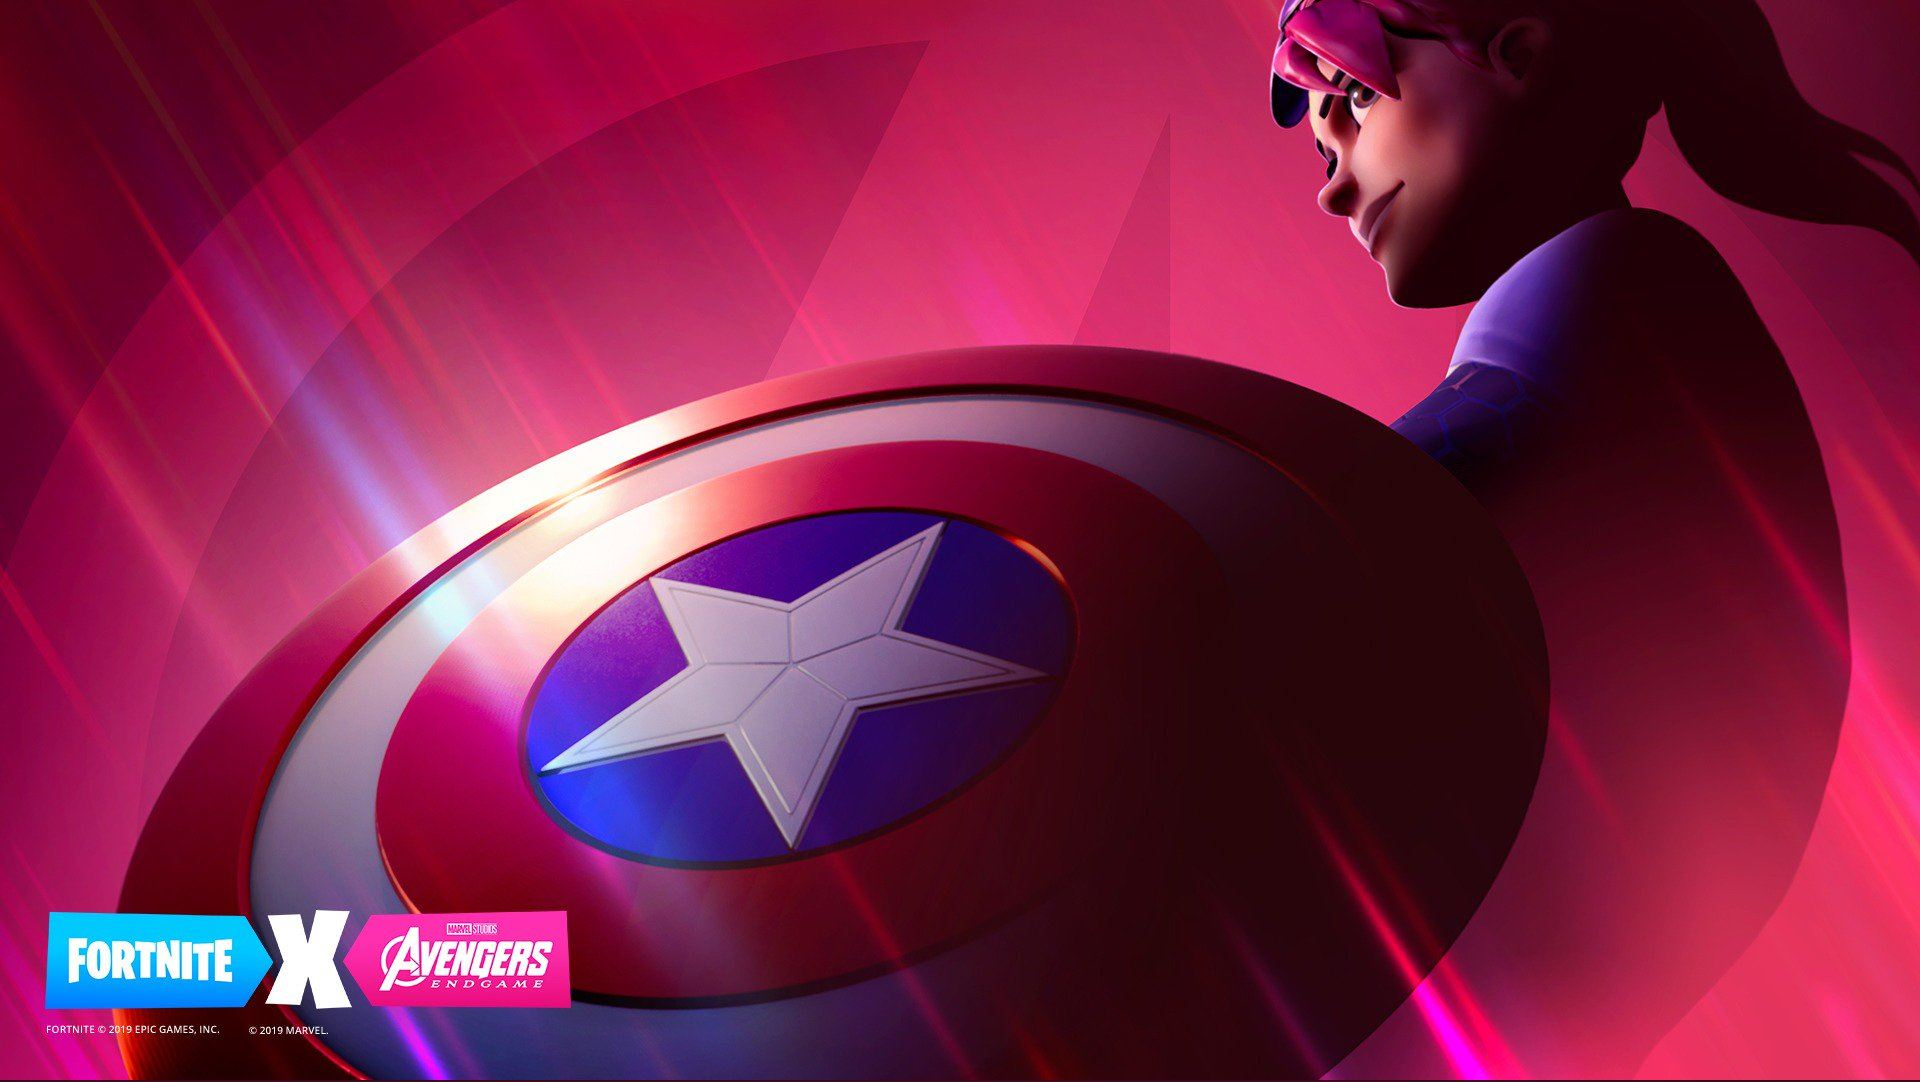 Fortnite teases Avengers Endgame cross-over